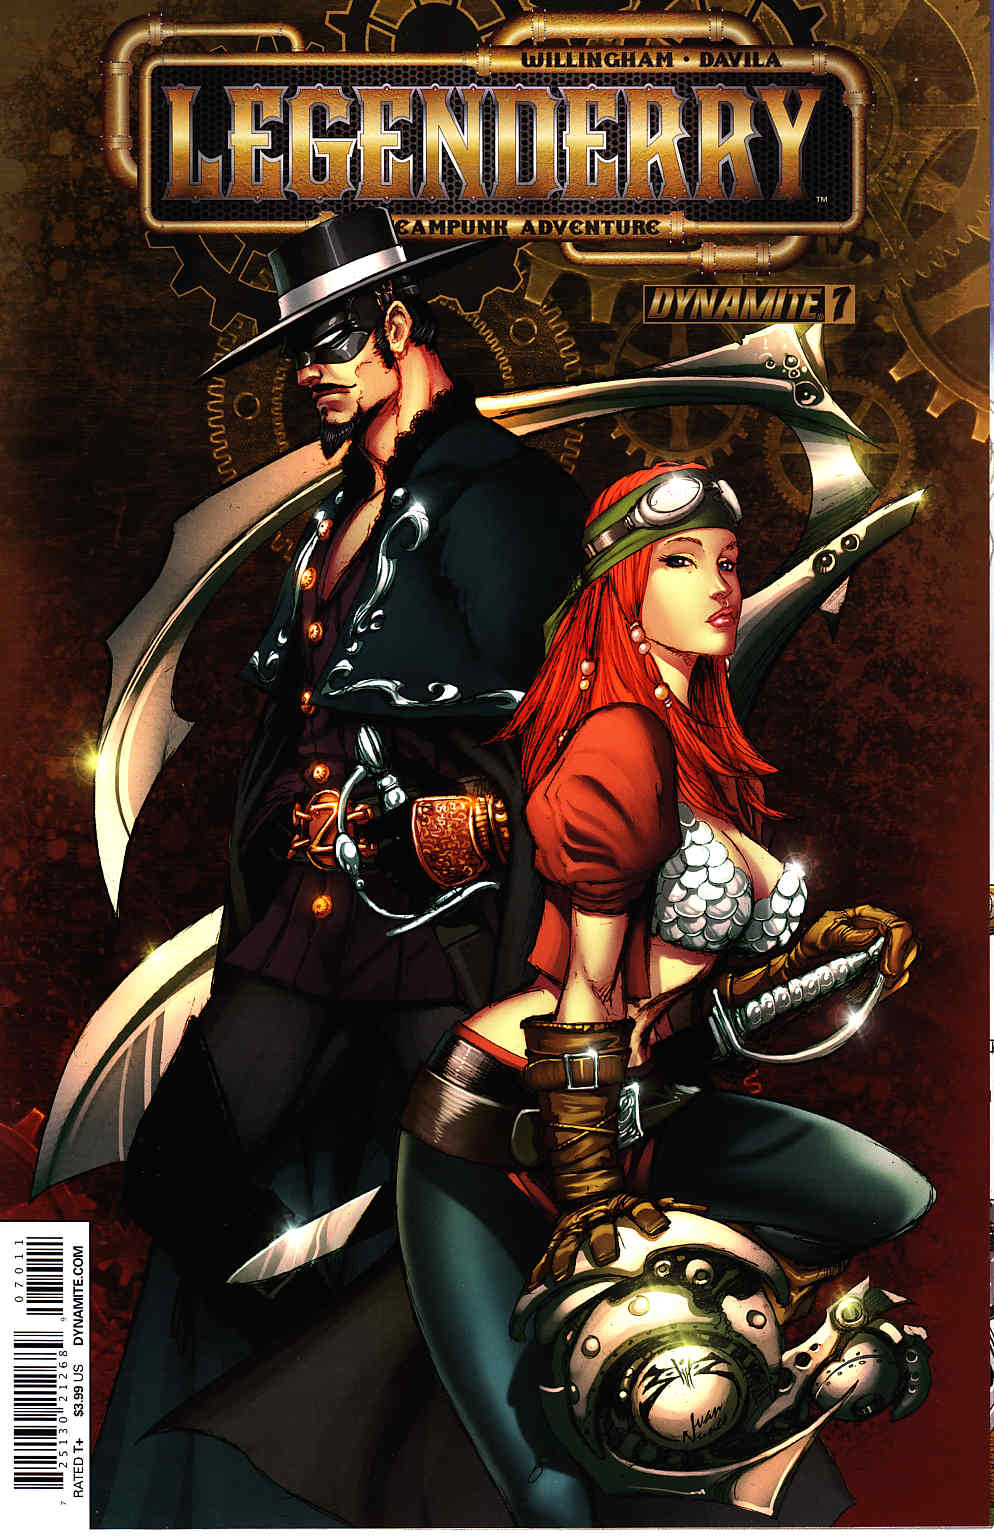 Legenderry A Steampunk Adventure #7 [Dynamite Comic] THUMBNAIL